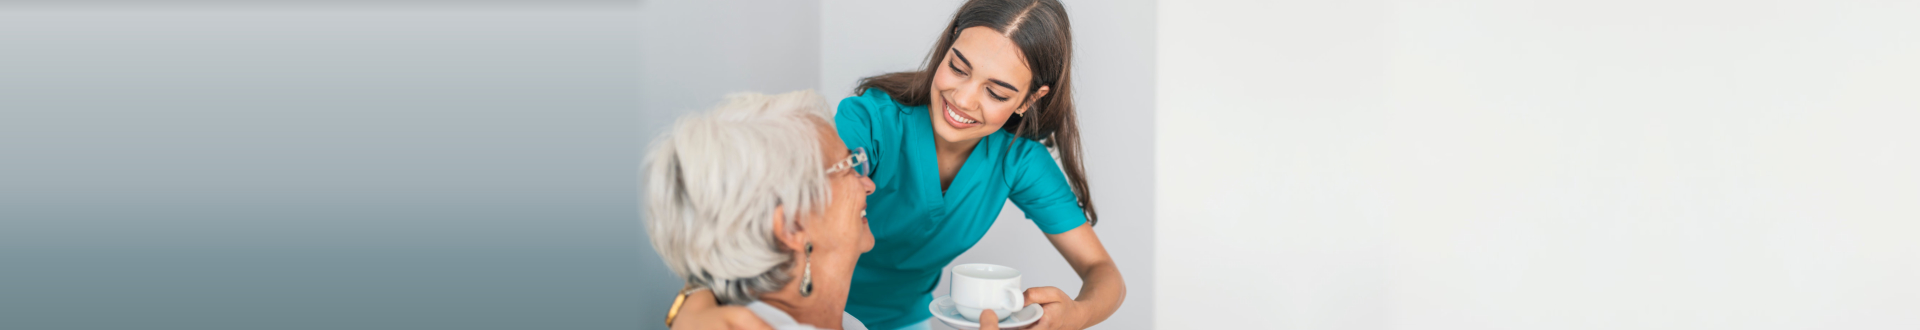 caregiver giving a cup of tea to a senior woman